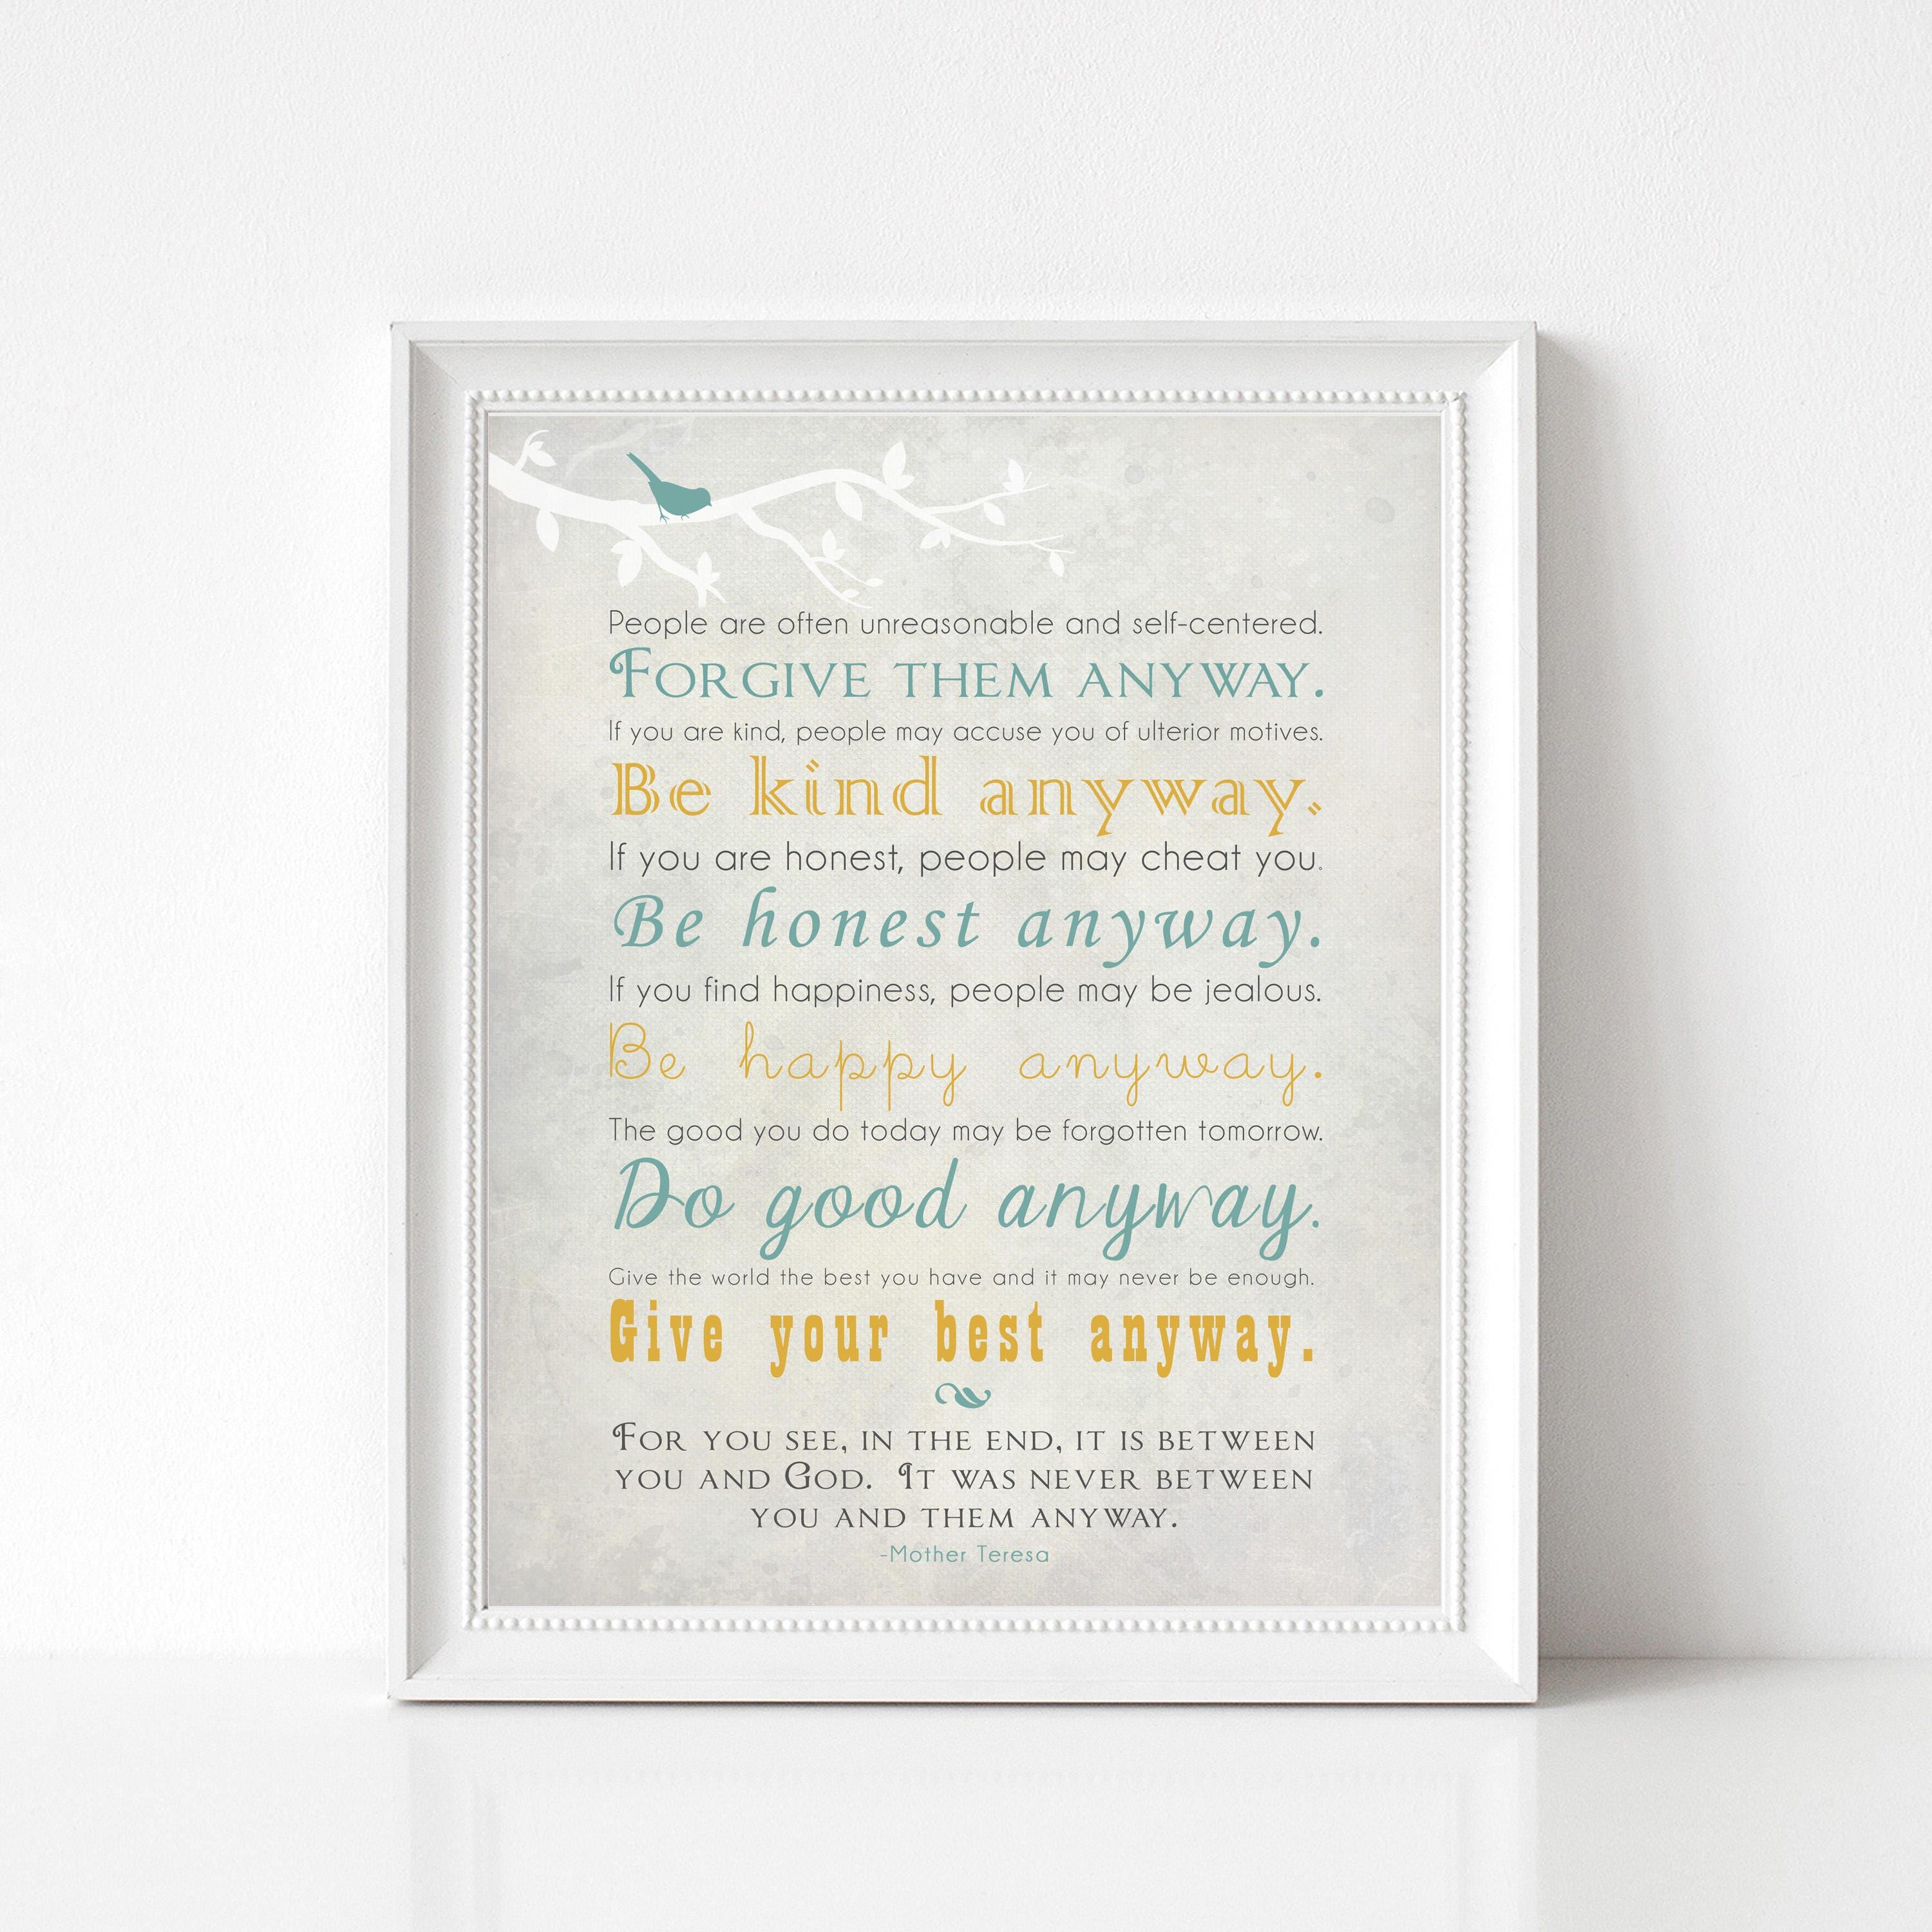 Mother Teresa Quotes People Are Often: Mother Teresa Quote Wall Art Print Forgive Them Anyway